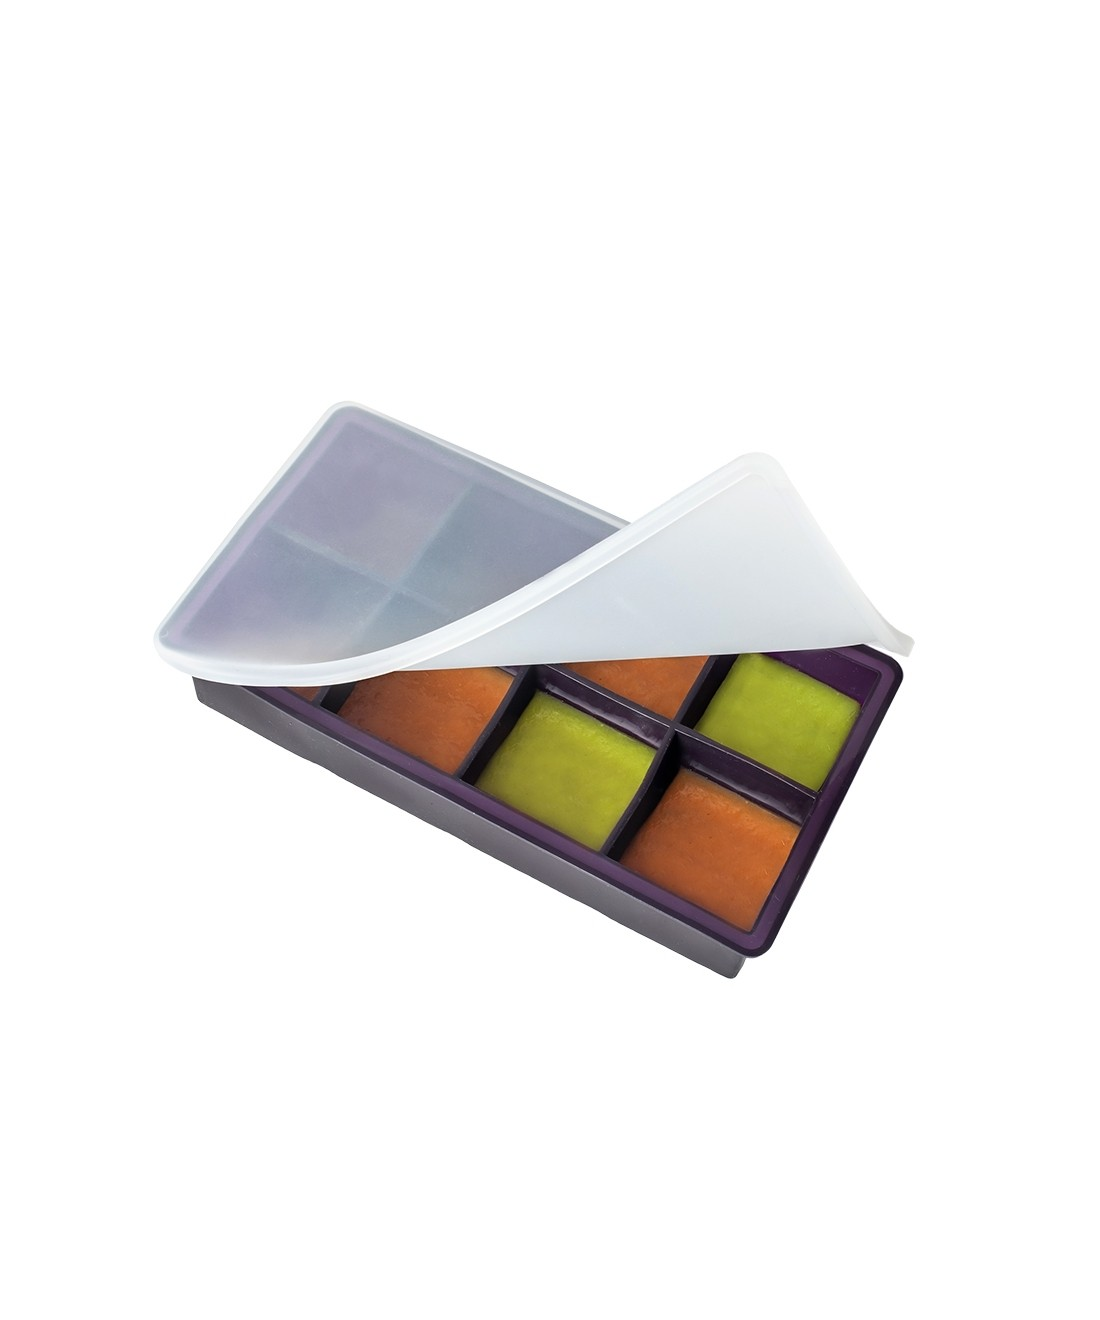 LoveAmme Baby Food Freezer Silicon Tray - 8 Servings